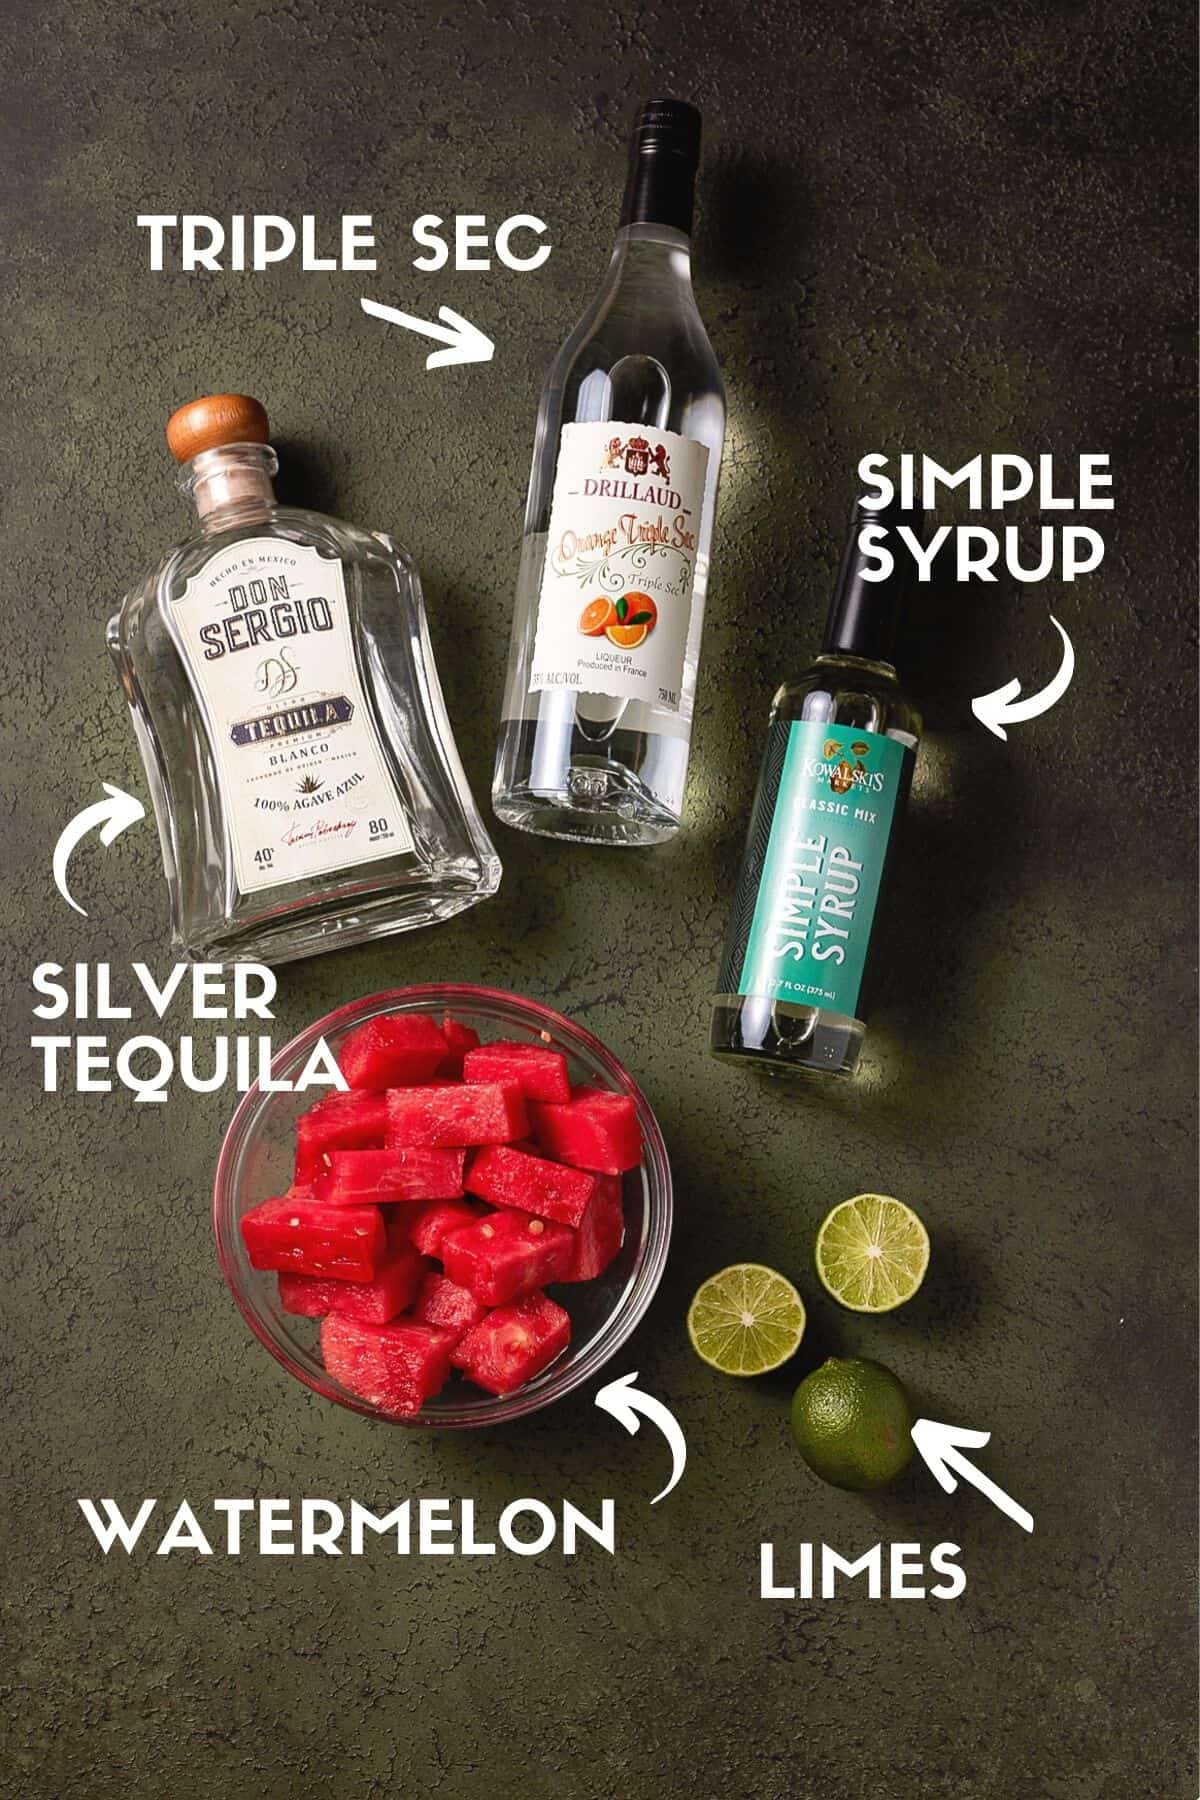 Watermelon Margarita ingredients including silver tequila, triple sec and lime juice.